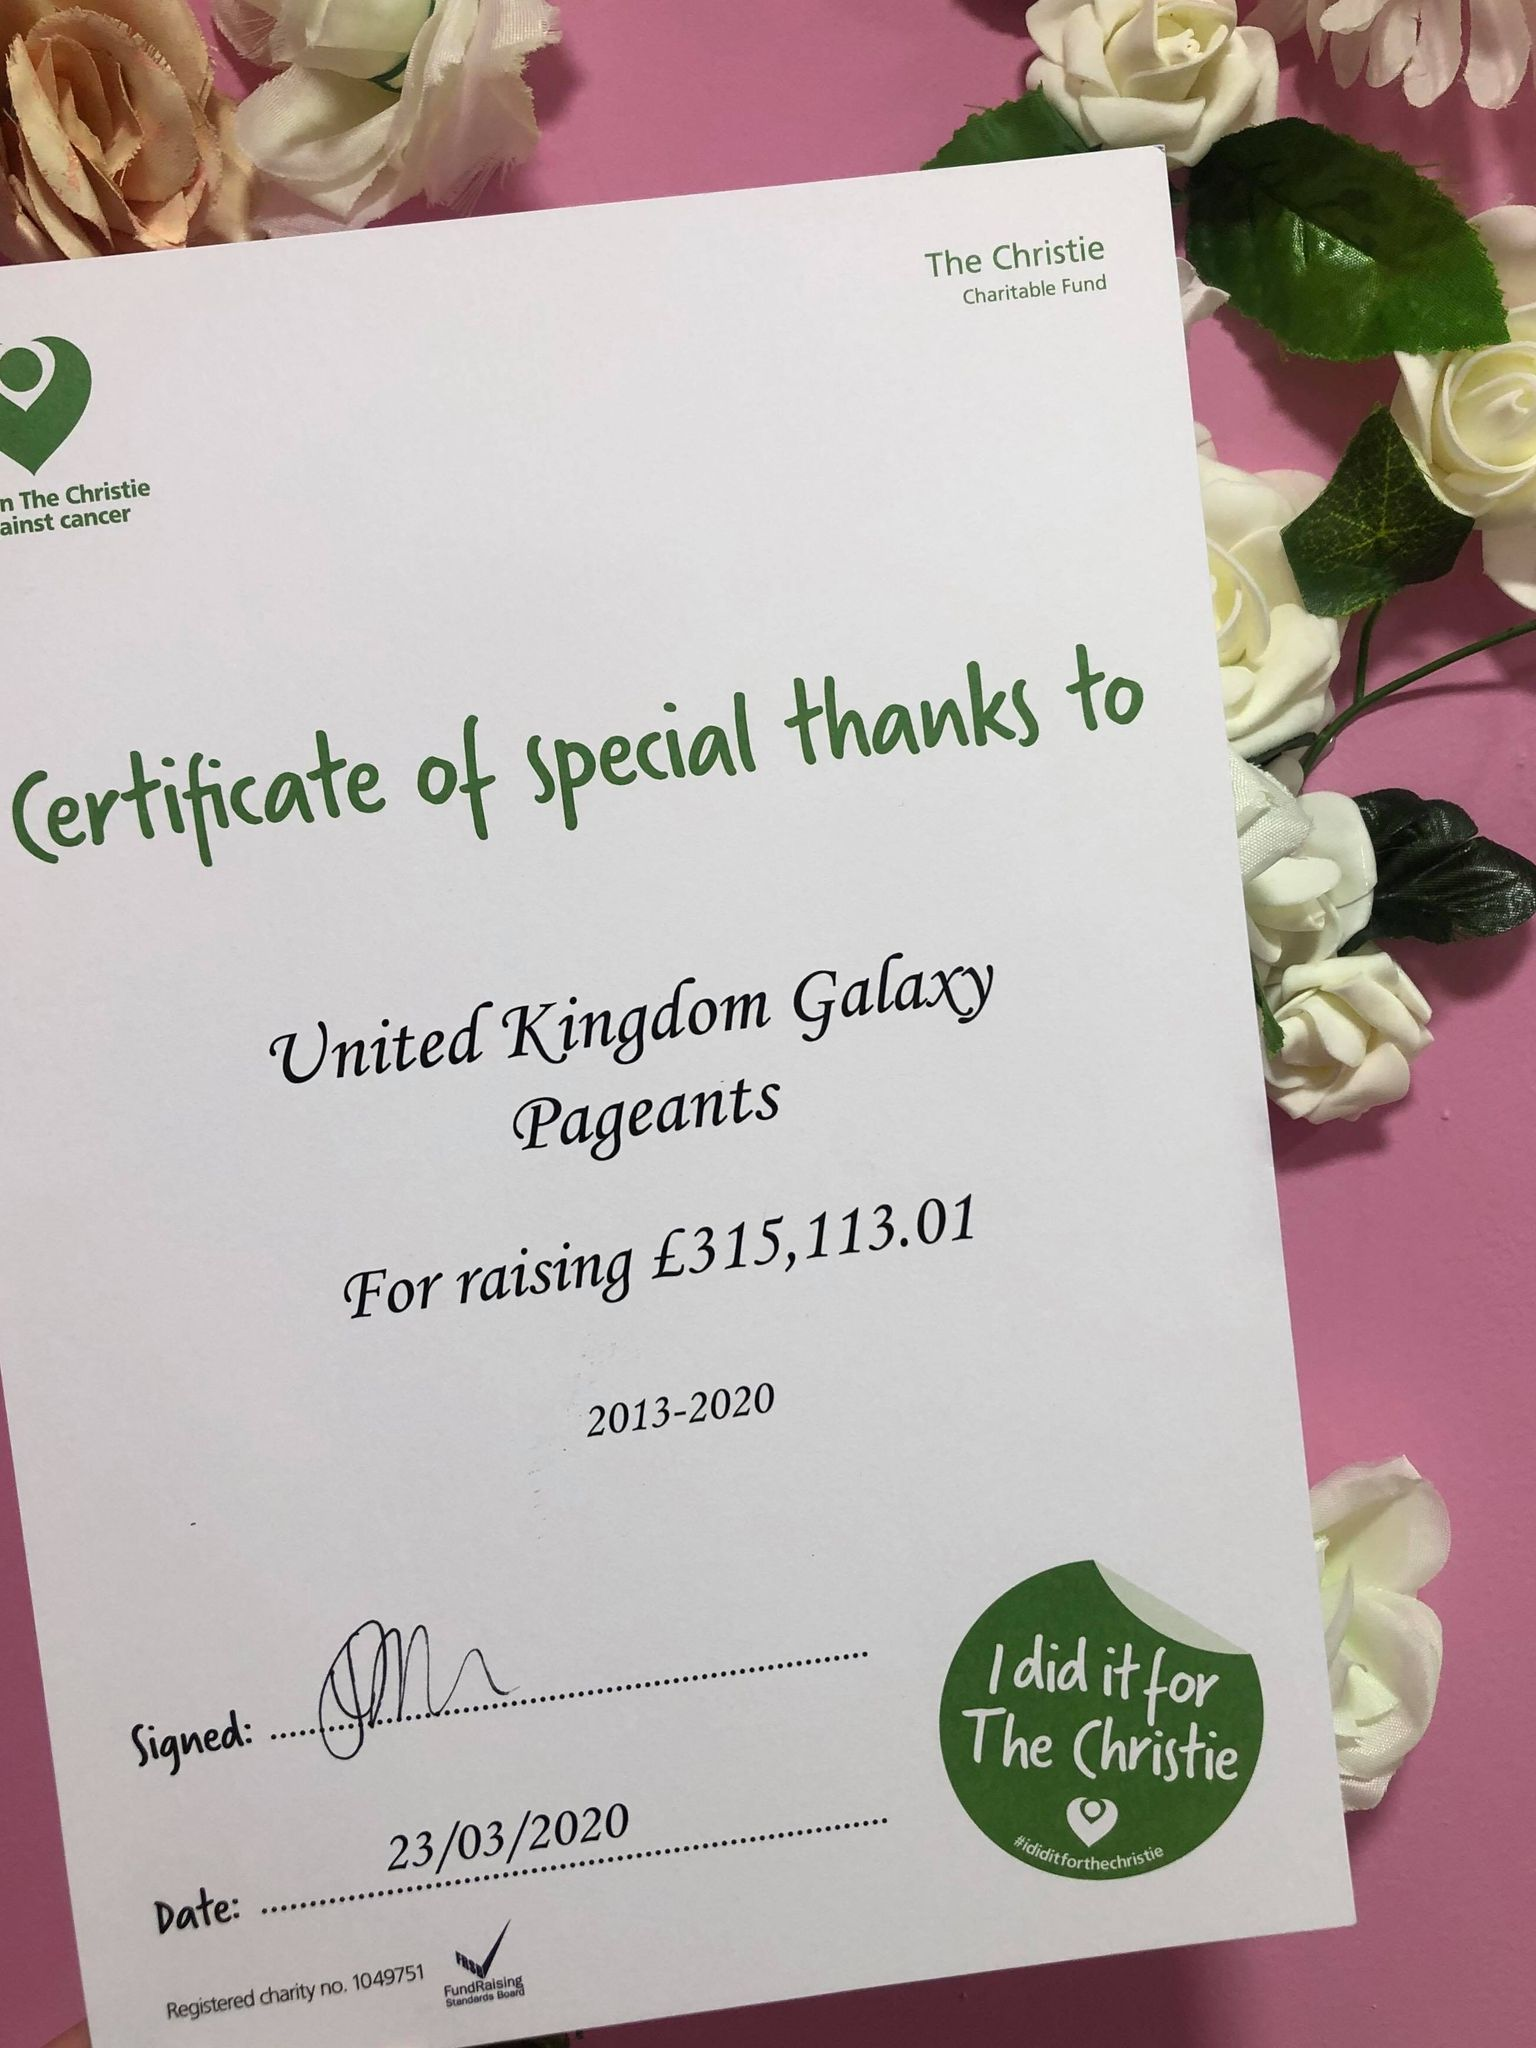 UK Galaxy Pageants raised over £300,000 for The Christie